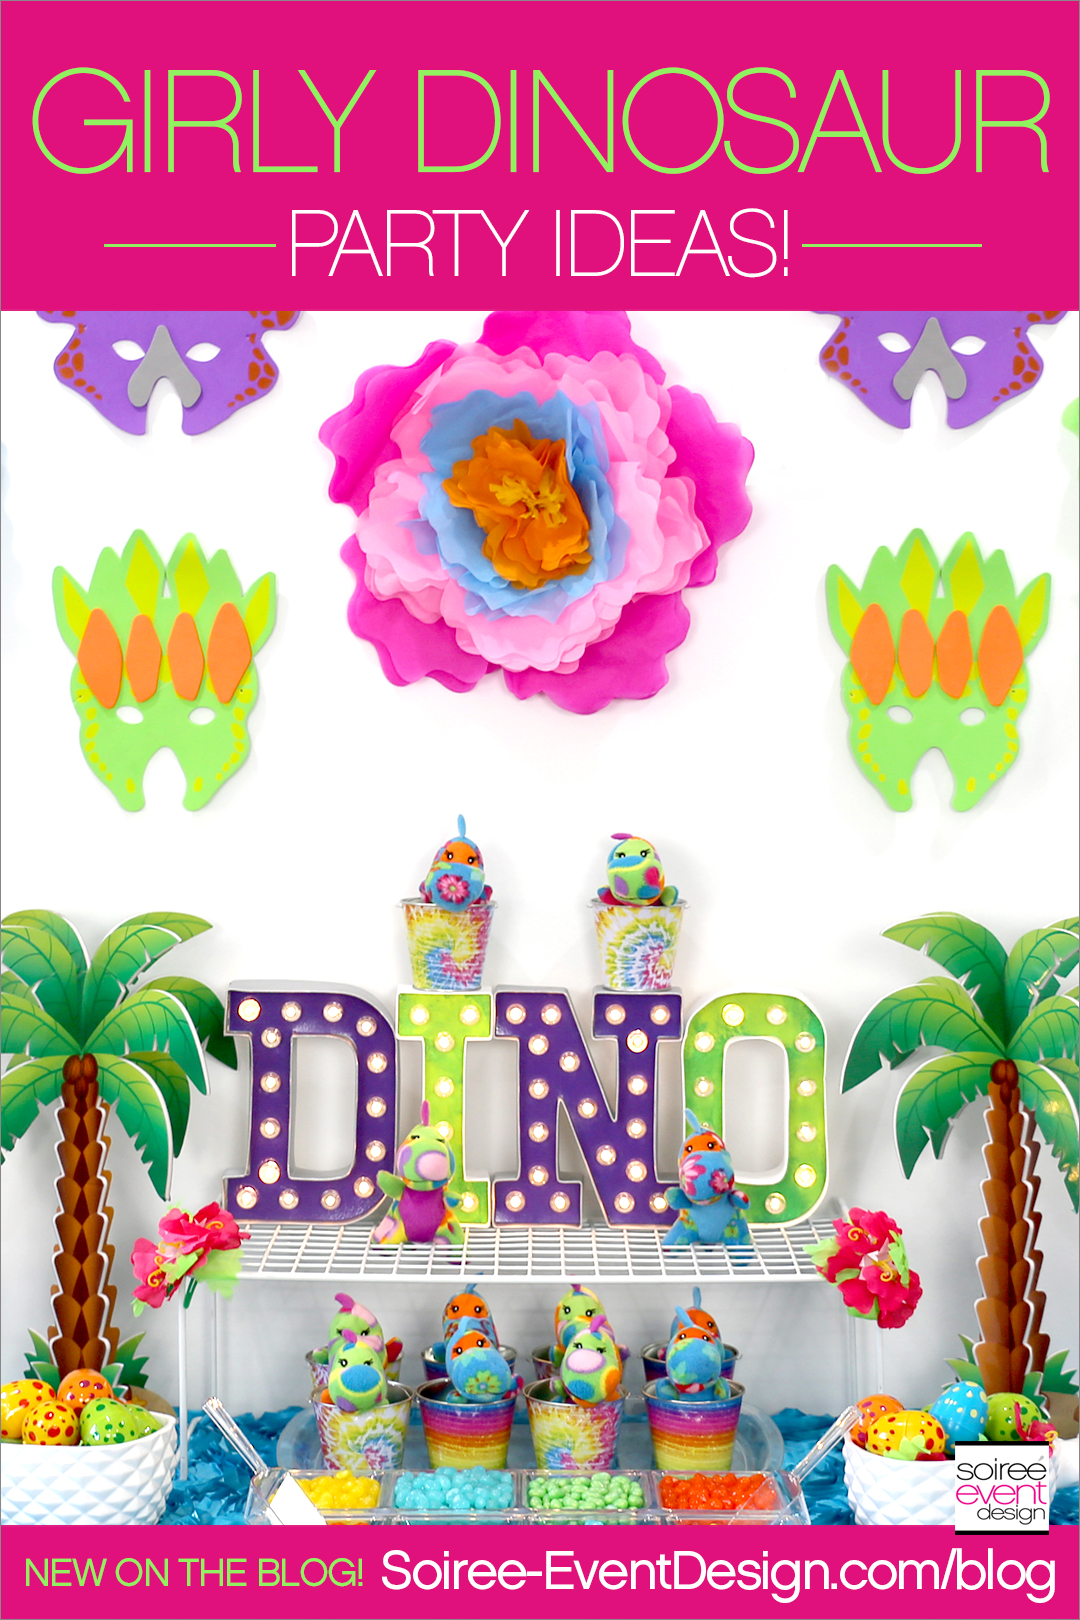 Girly Dinosaur Party Ideas